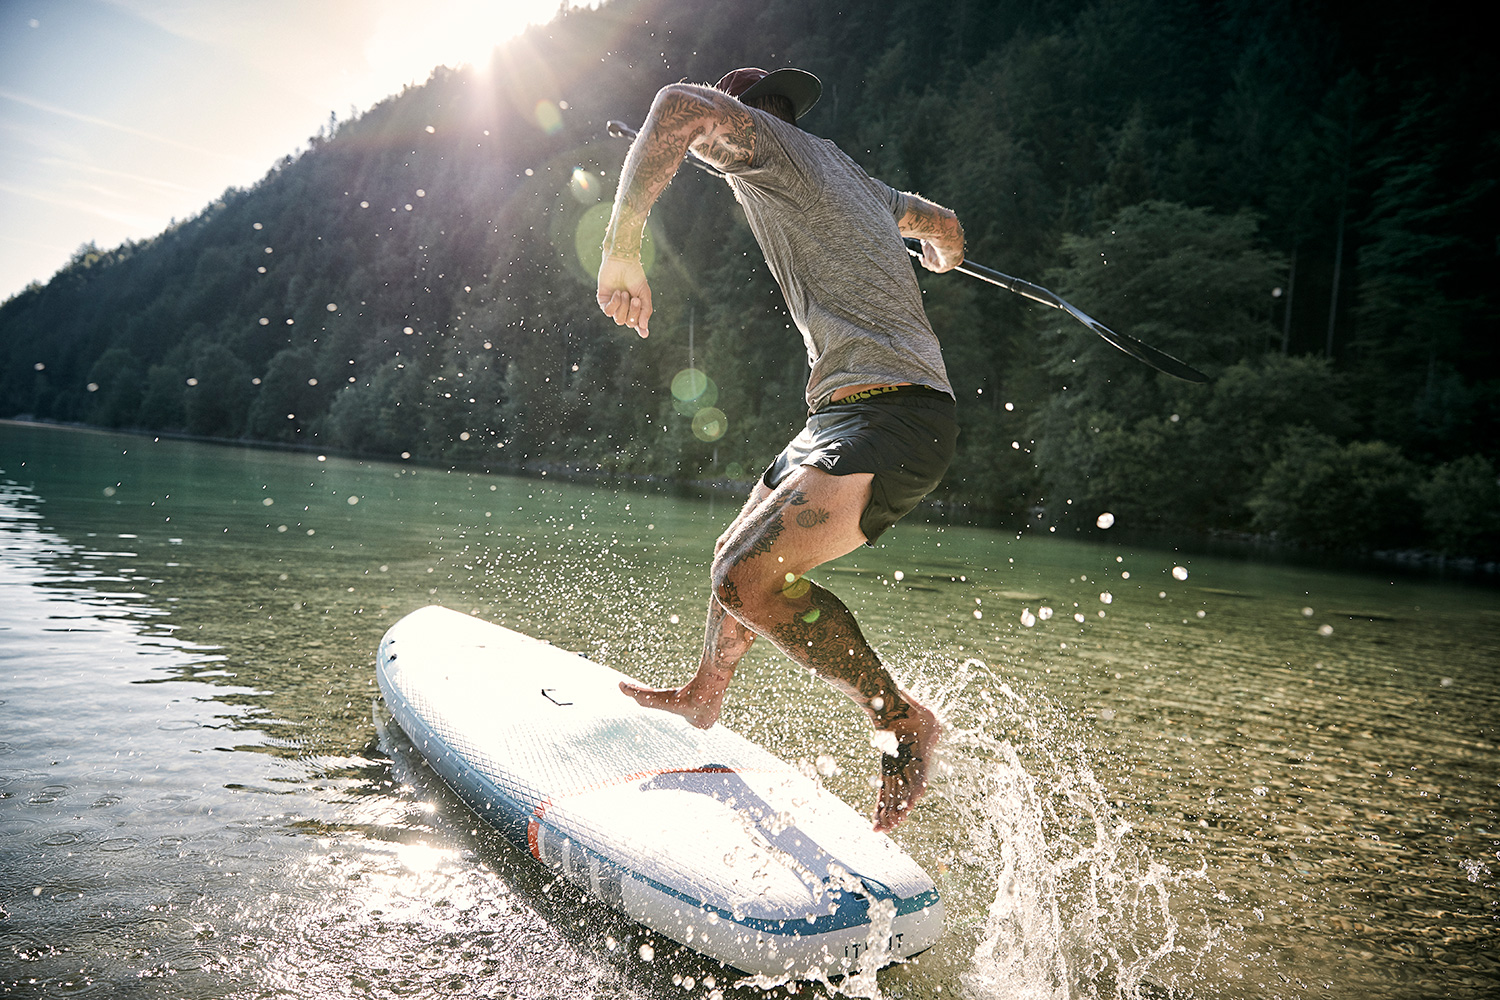 Danny jumping onto a sup at Walchensee with the water splashing around him